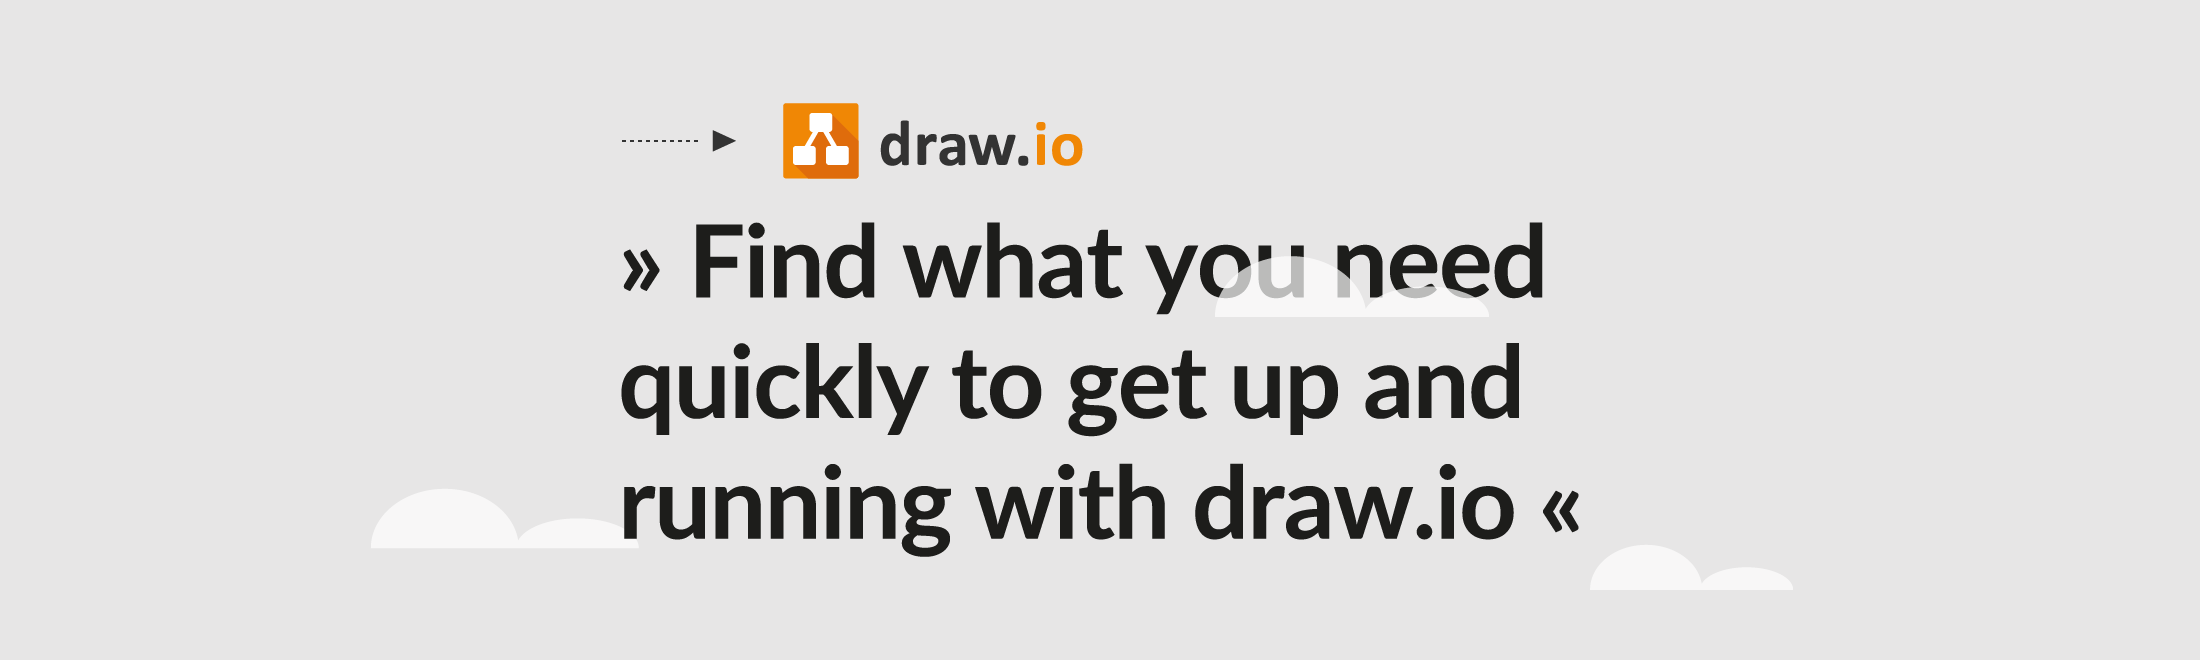 Find what you need quickly to get up and running with draw.io.